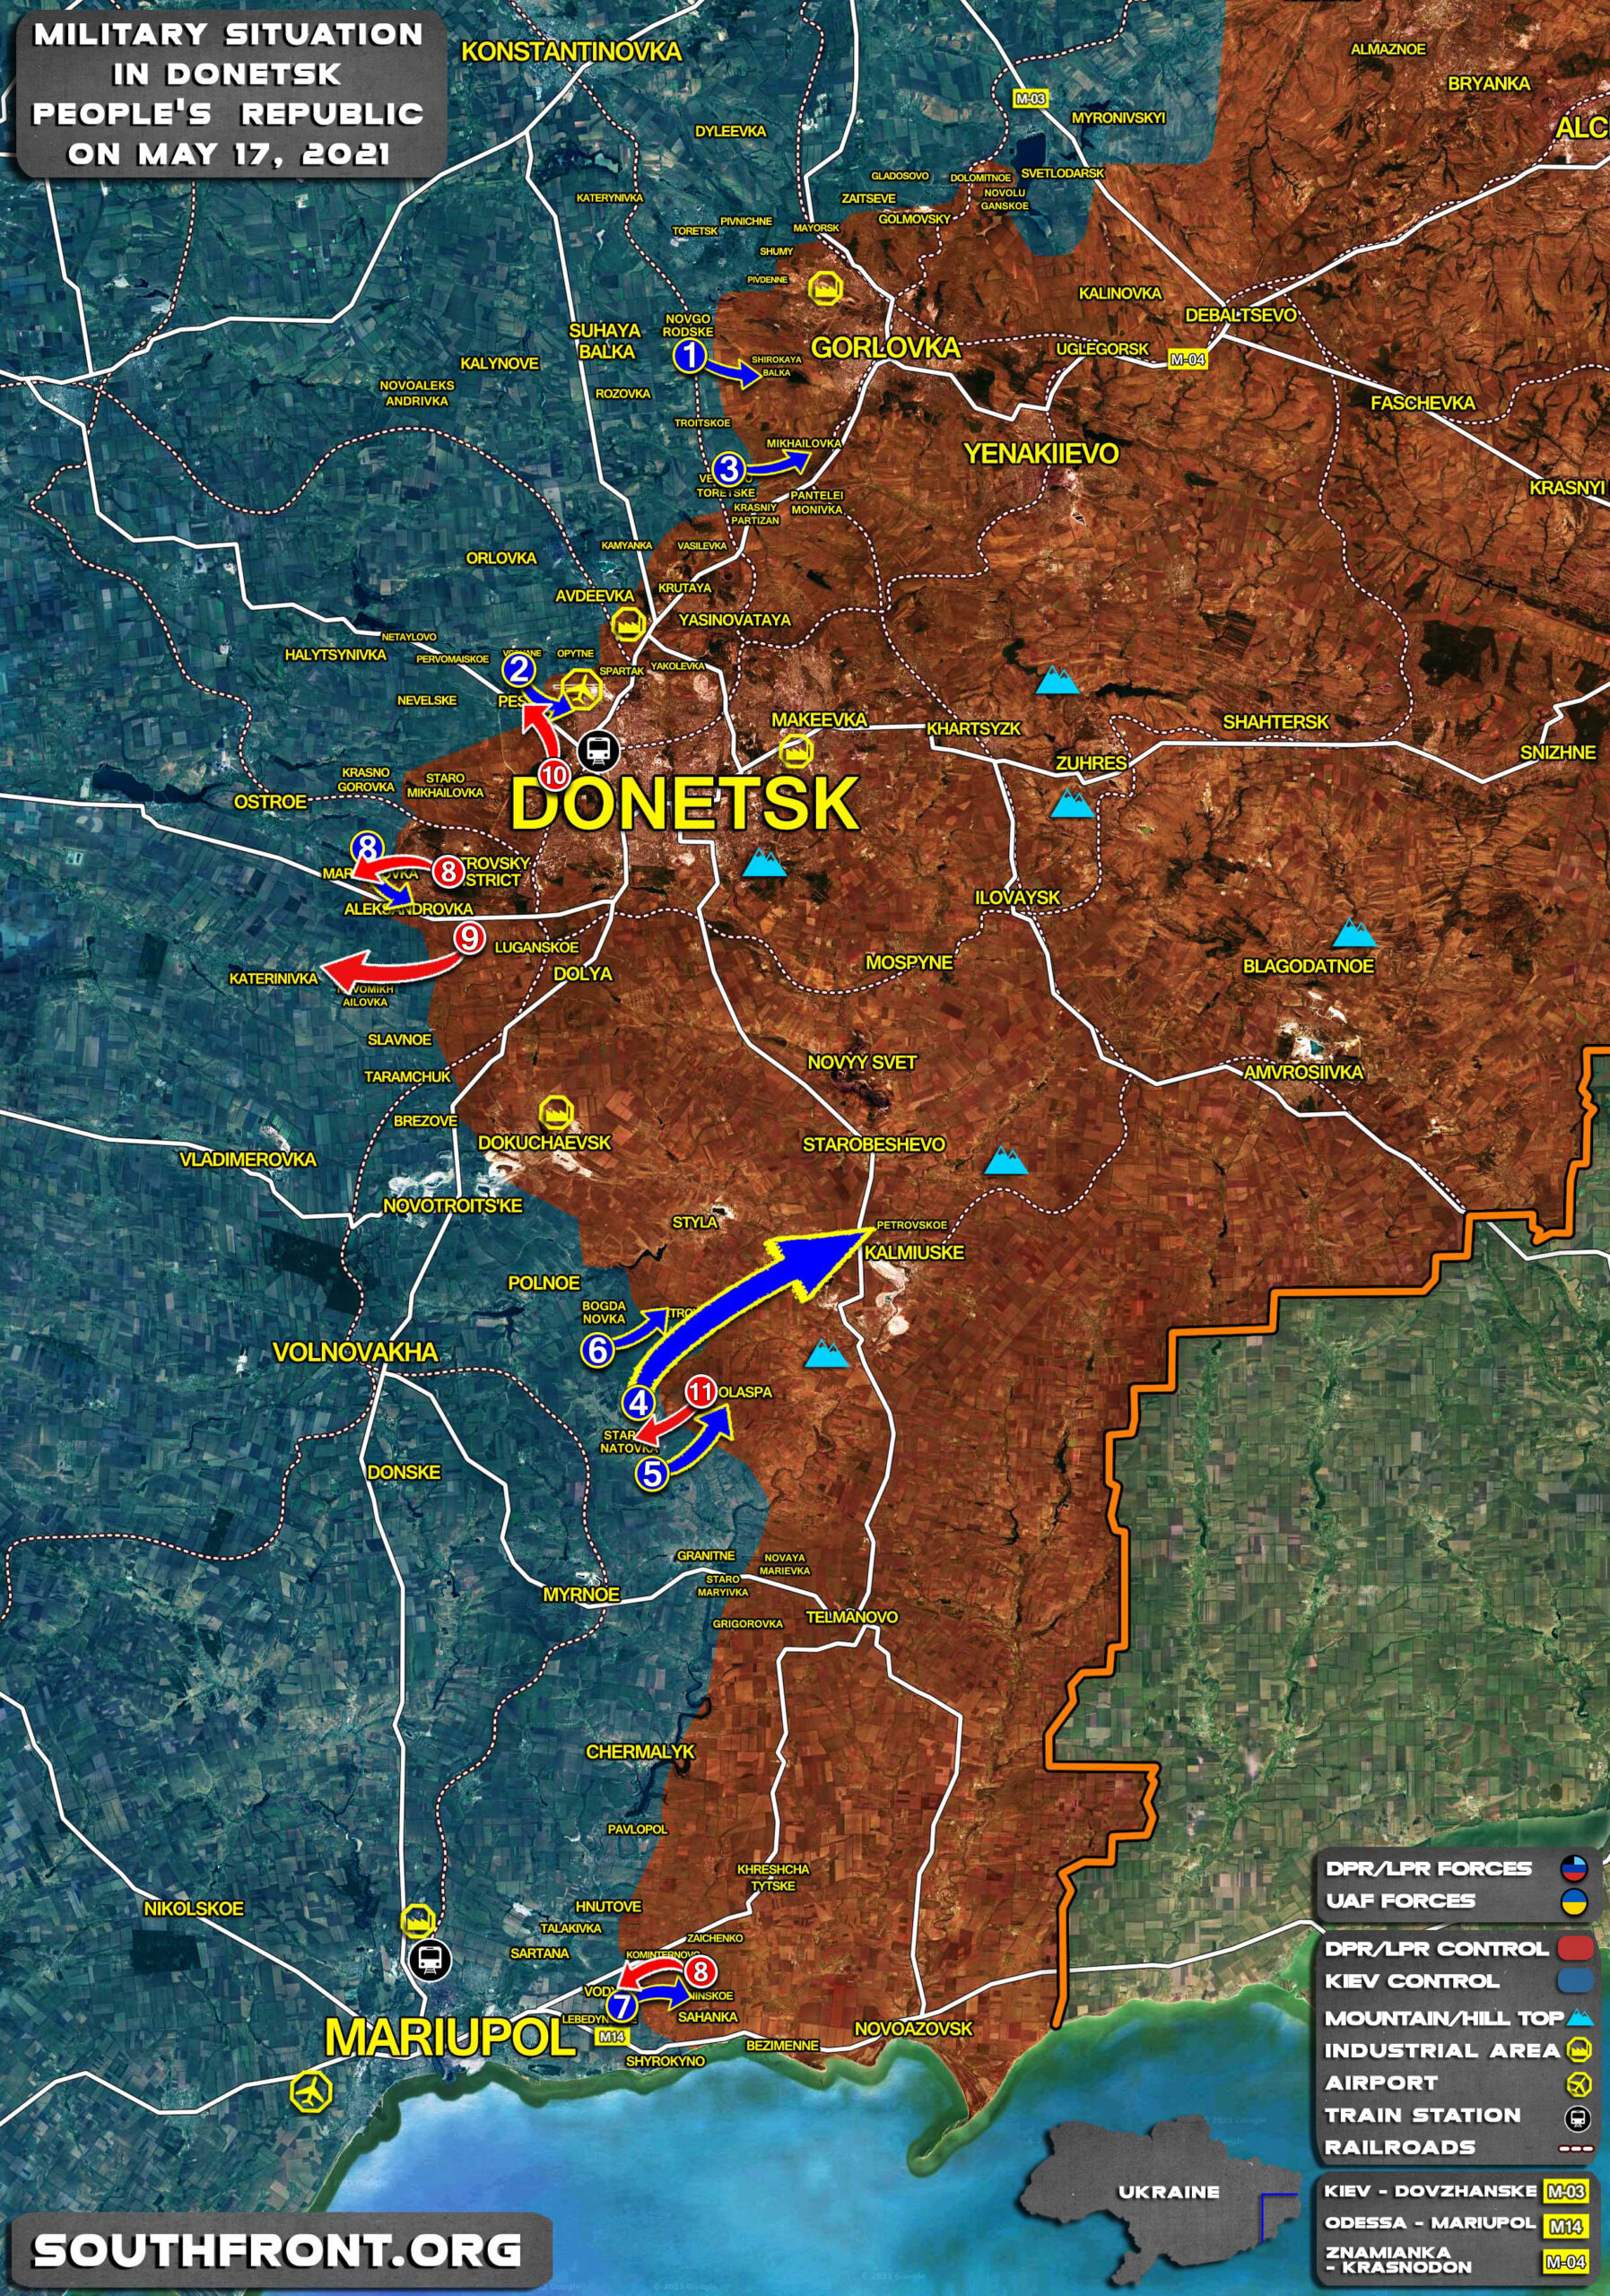 Military Situation In Donetsk People's Republic On May 17, 2021 (Map Update)